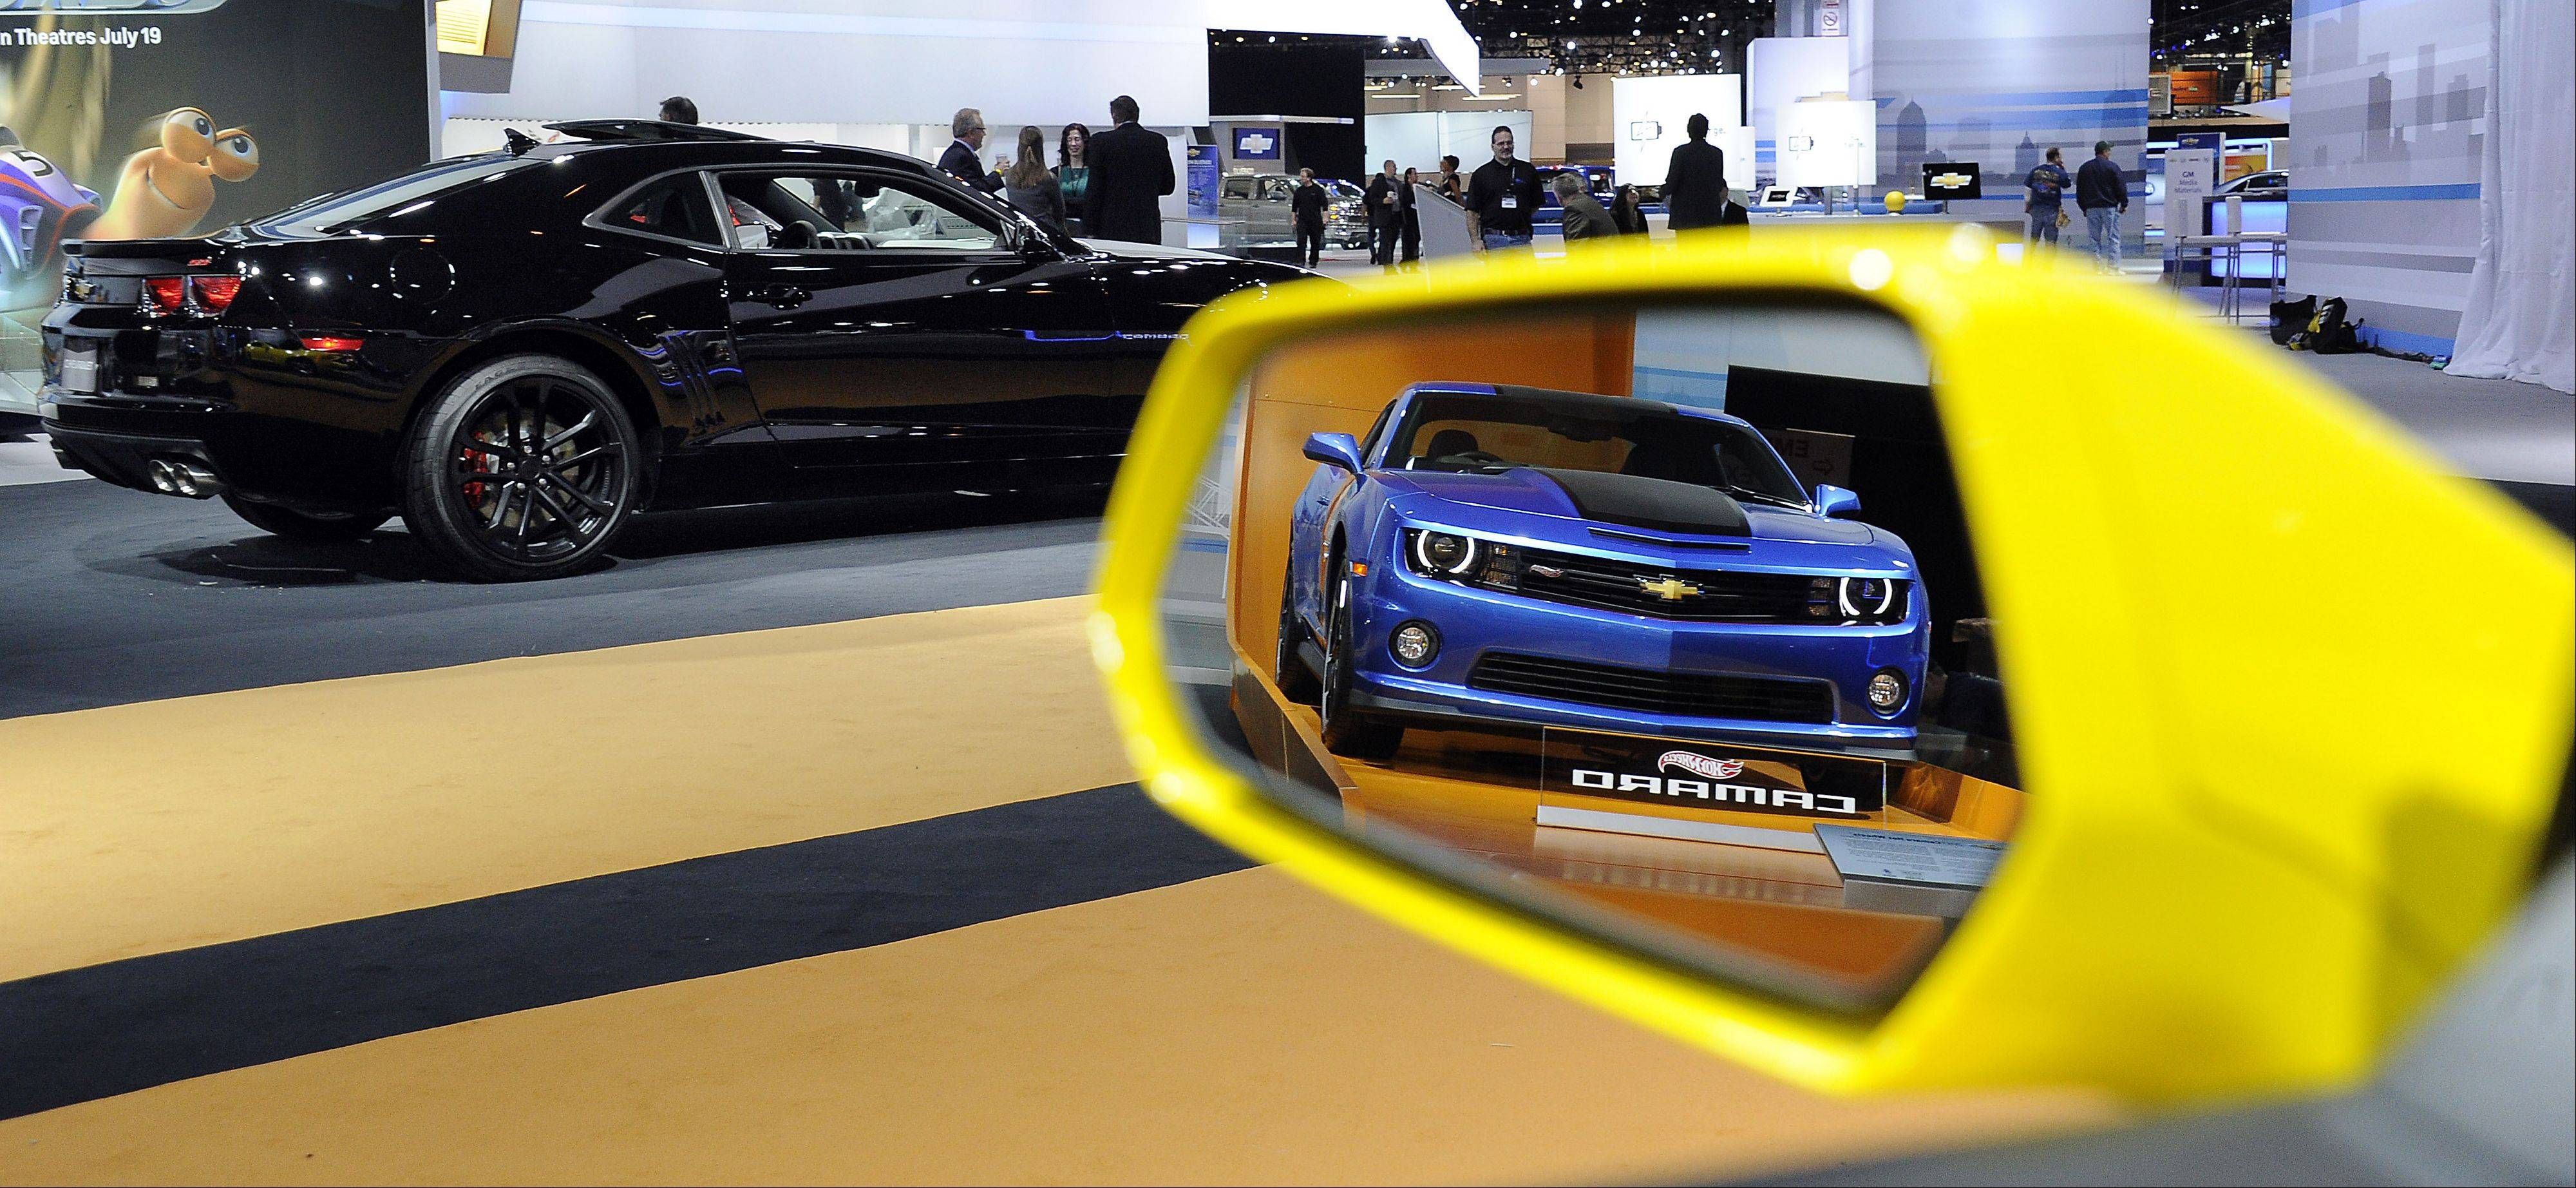 The new Chevrolet Camaro Hot Wheels Edition is reflected in the mirror of another Camaro at the Chicago Auto Show Thursday.